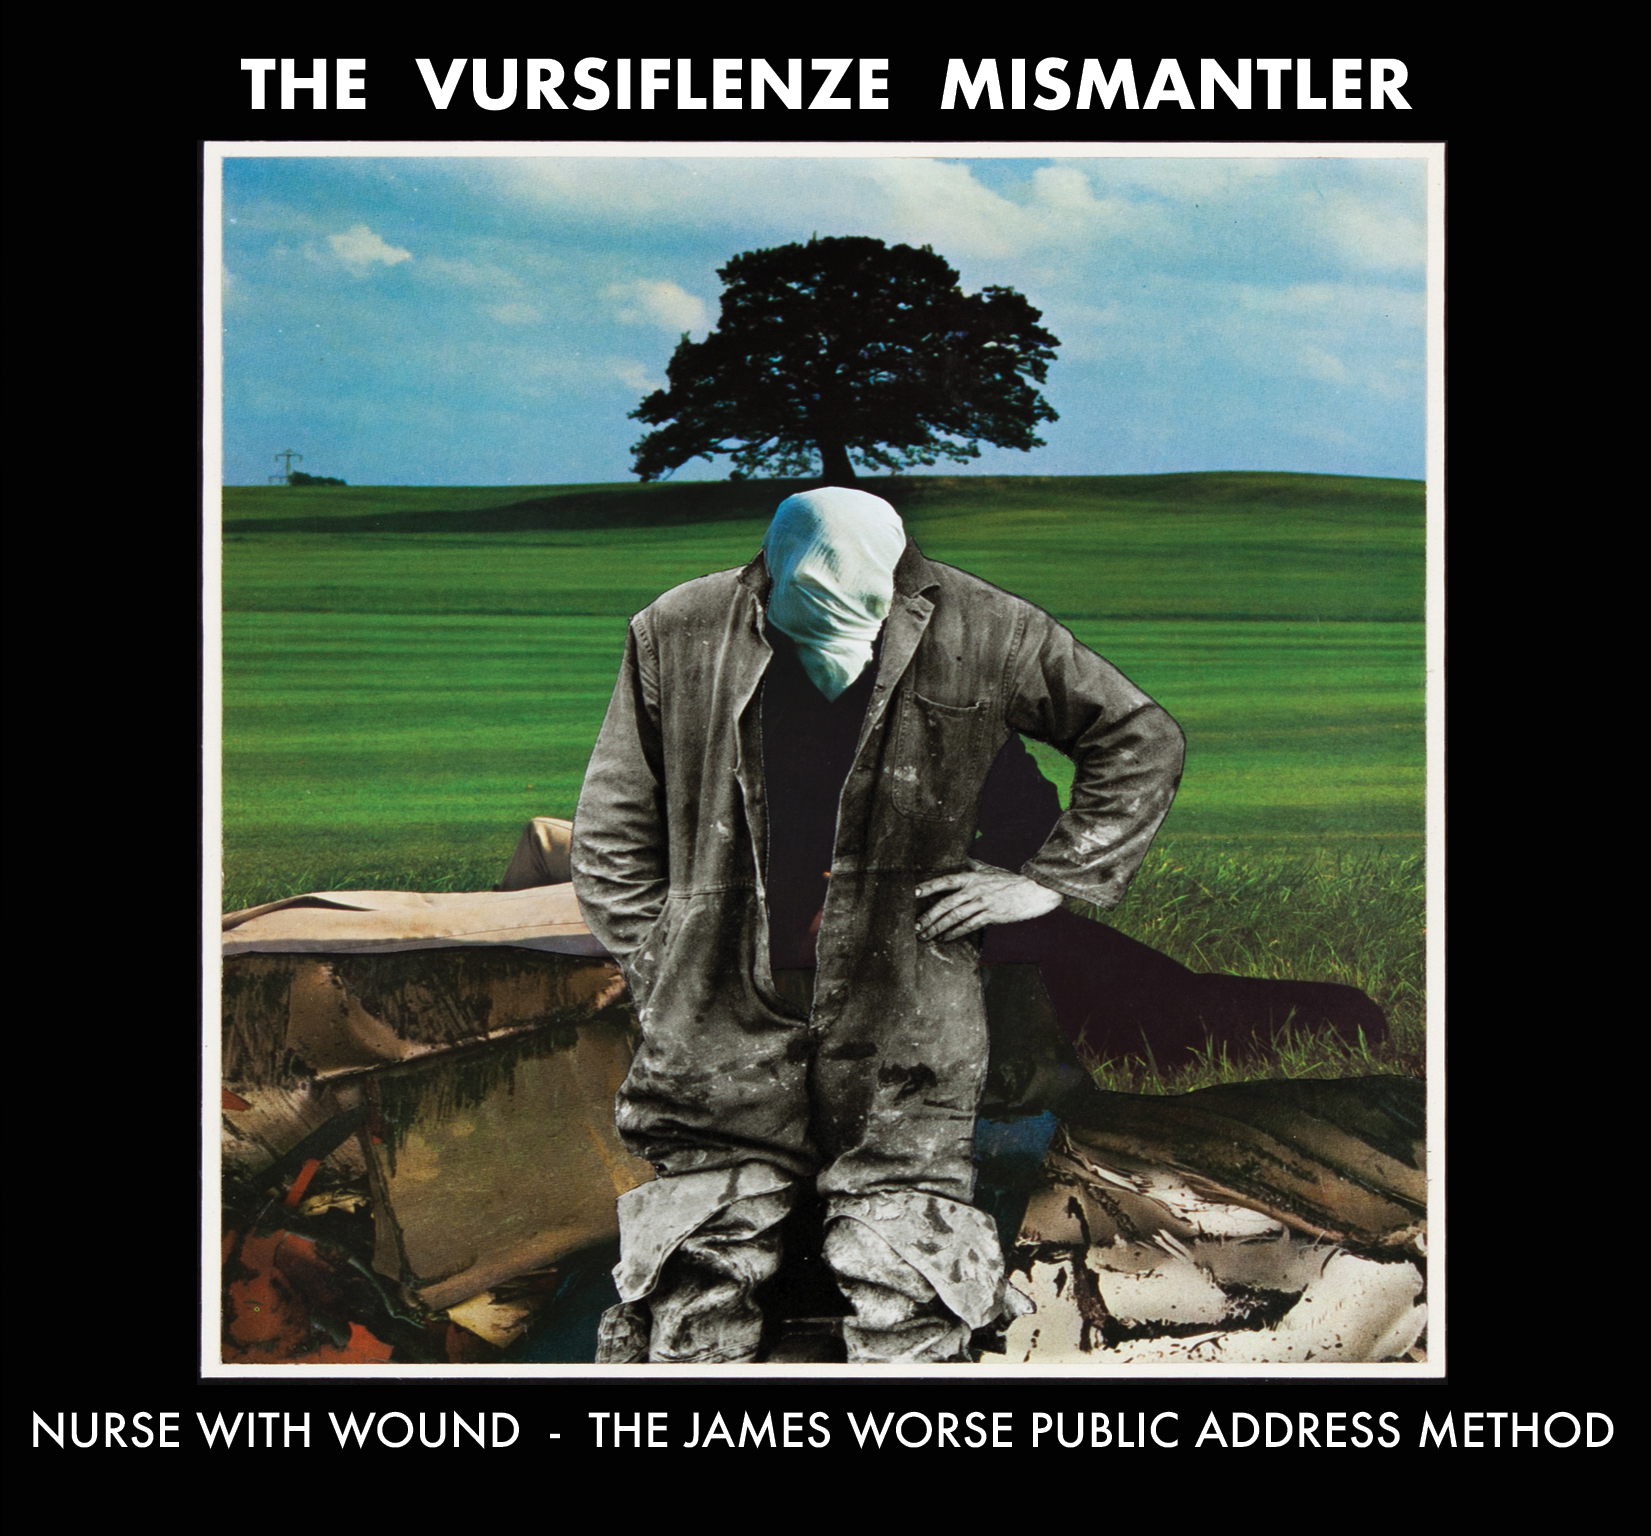 THE VURSIFLENZE MISMANTLER copy cover onlycopy.jpg